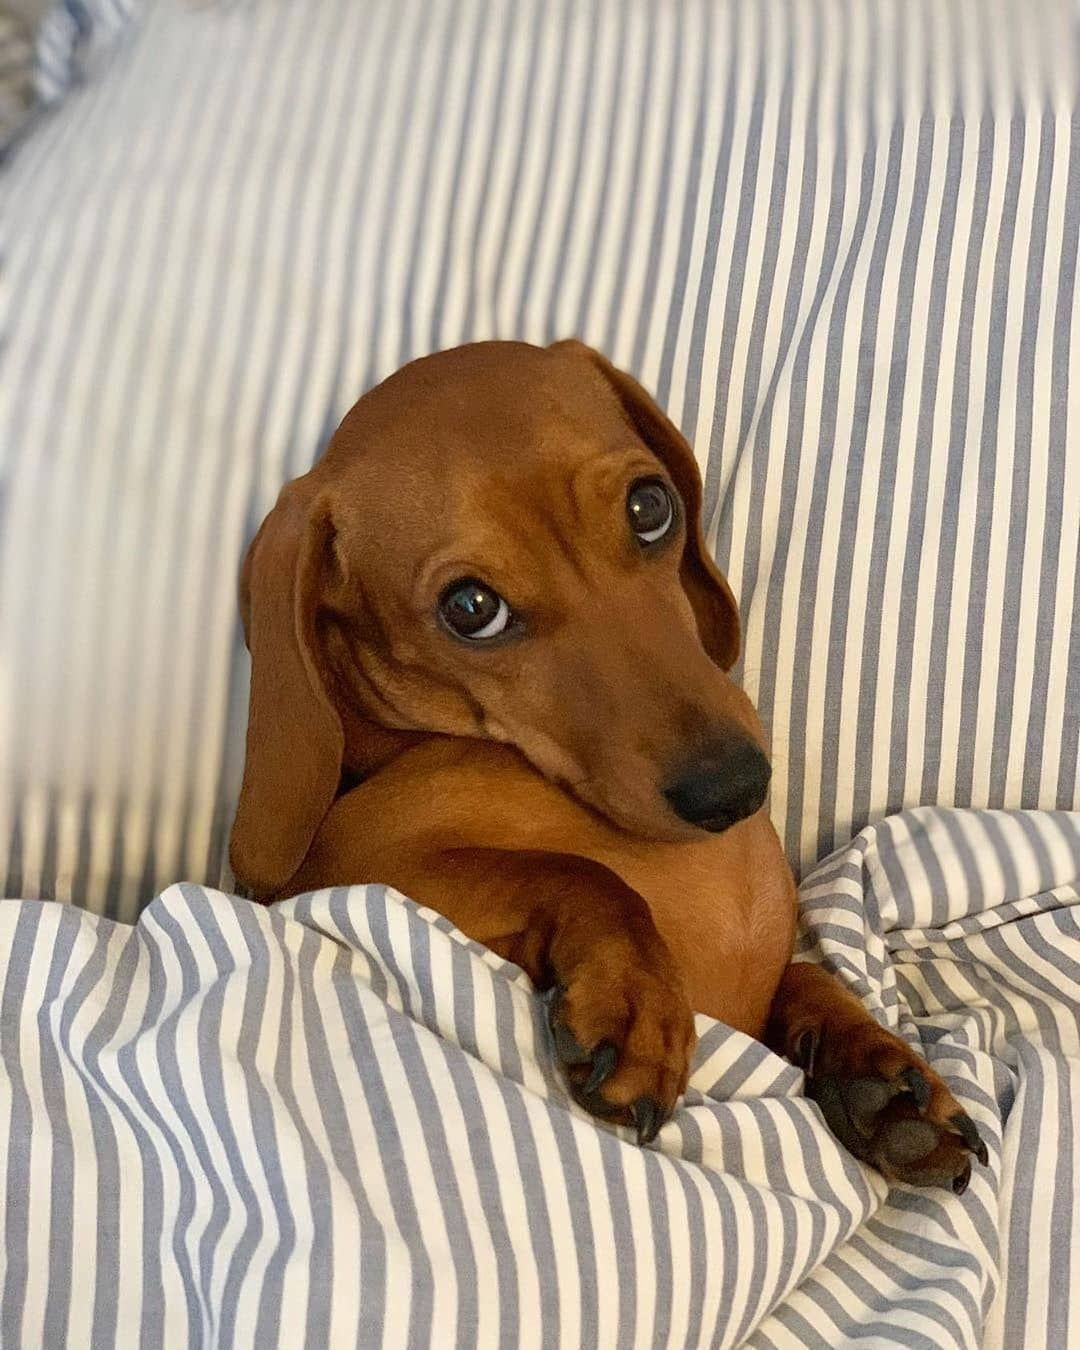 Pin By Nancy Shoemaker On Dachshunds Puppies Cute Baby Animals